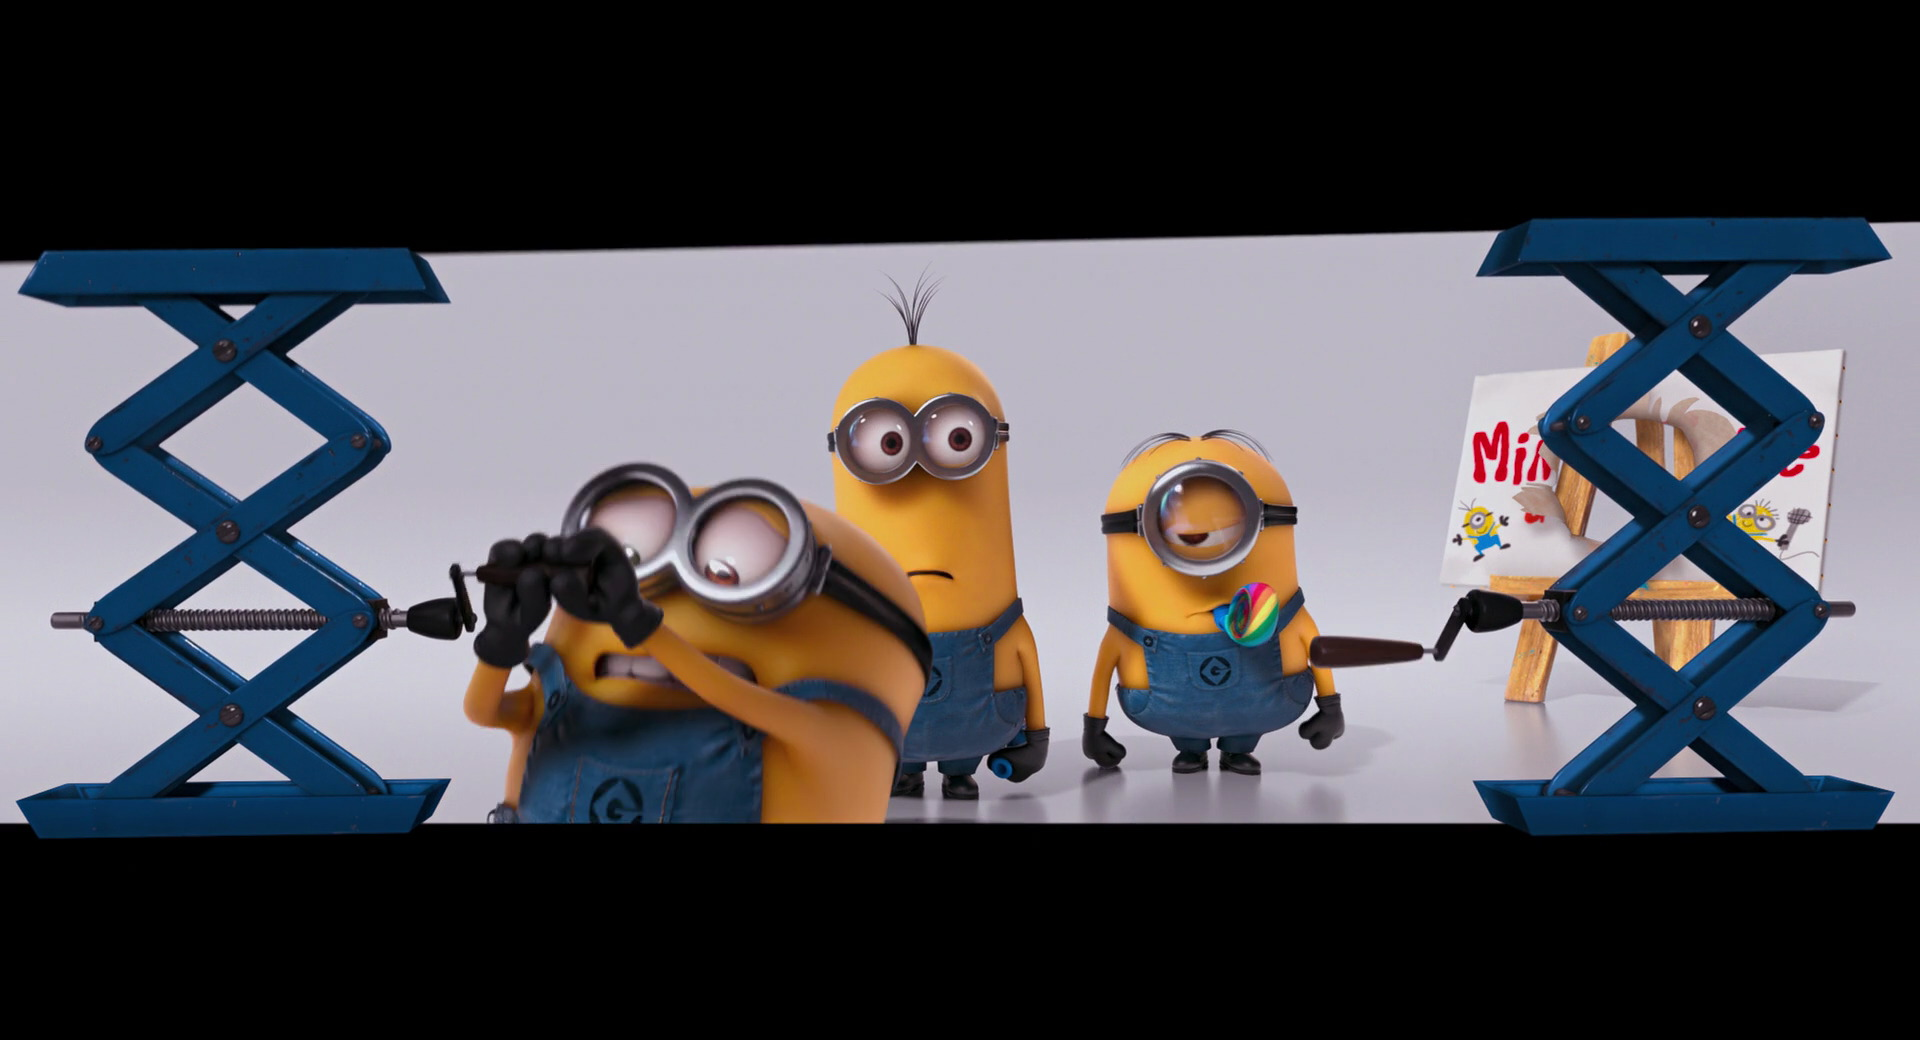 despicable me 3 full movie download free 720p